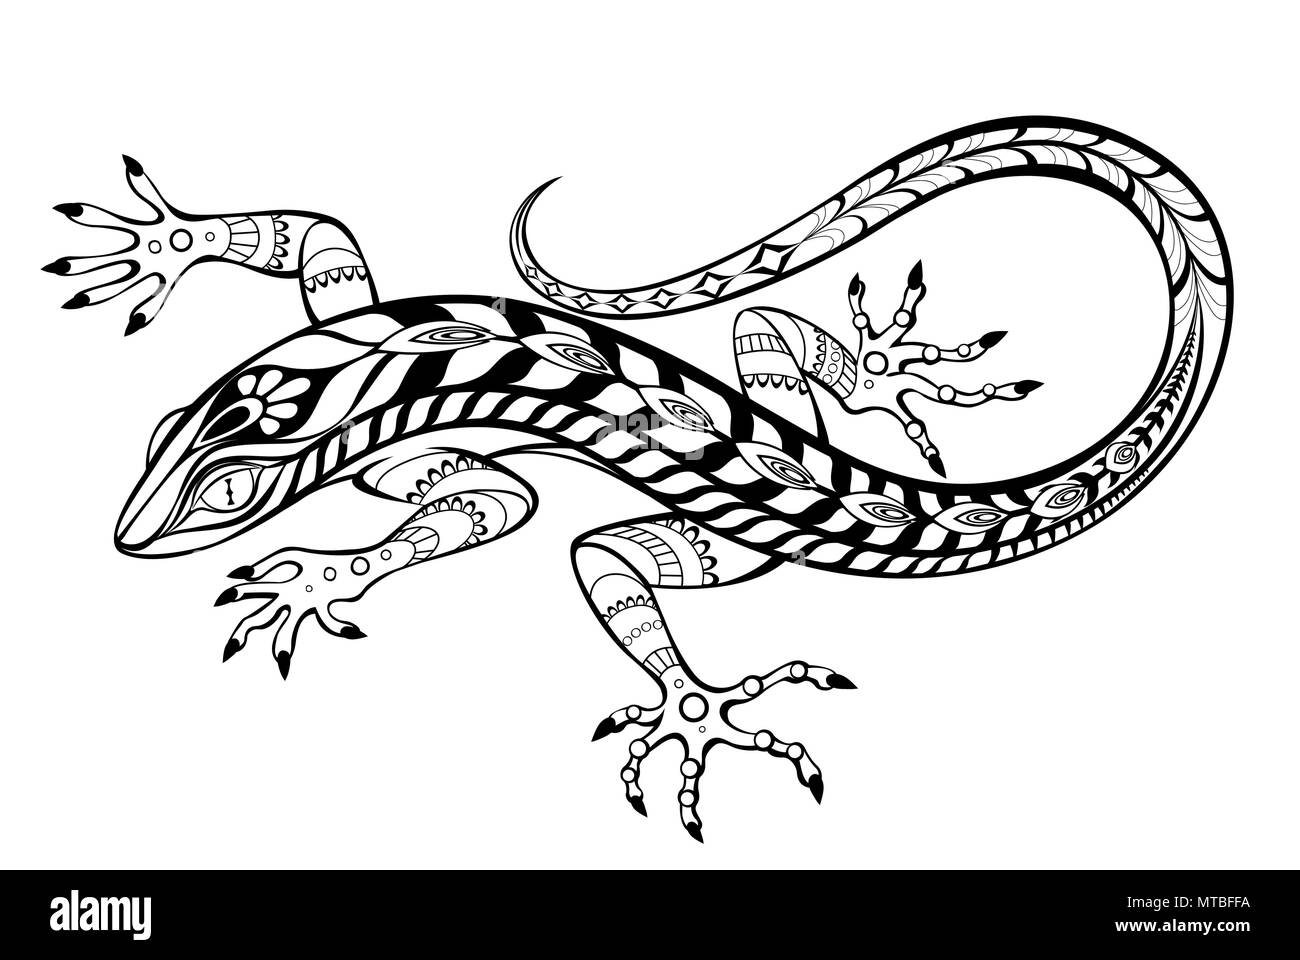 An artistically drawn, contour, patterned lizard on  white background. Tattoos style. - Stock Image